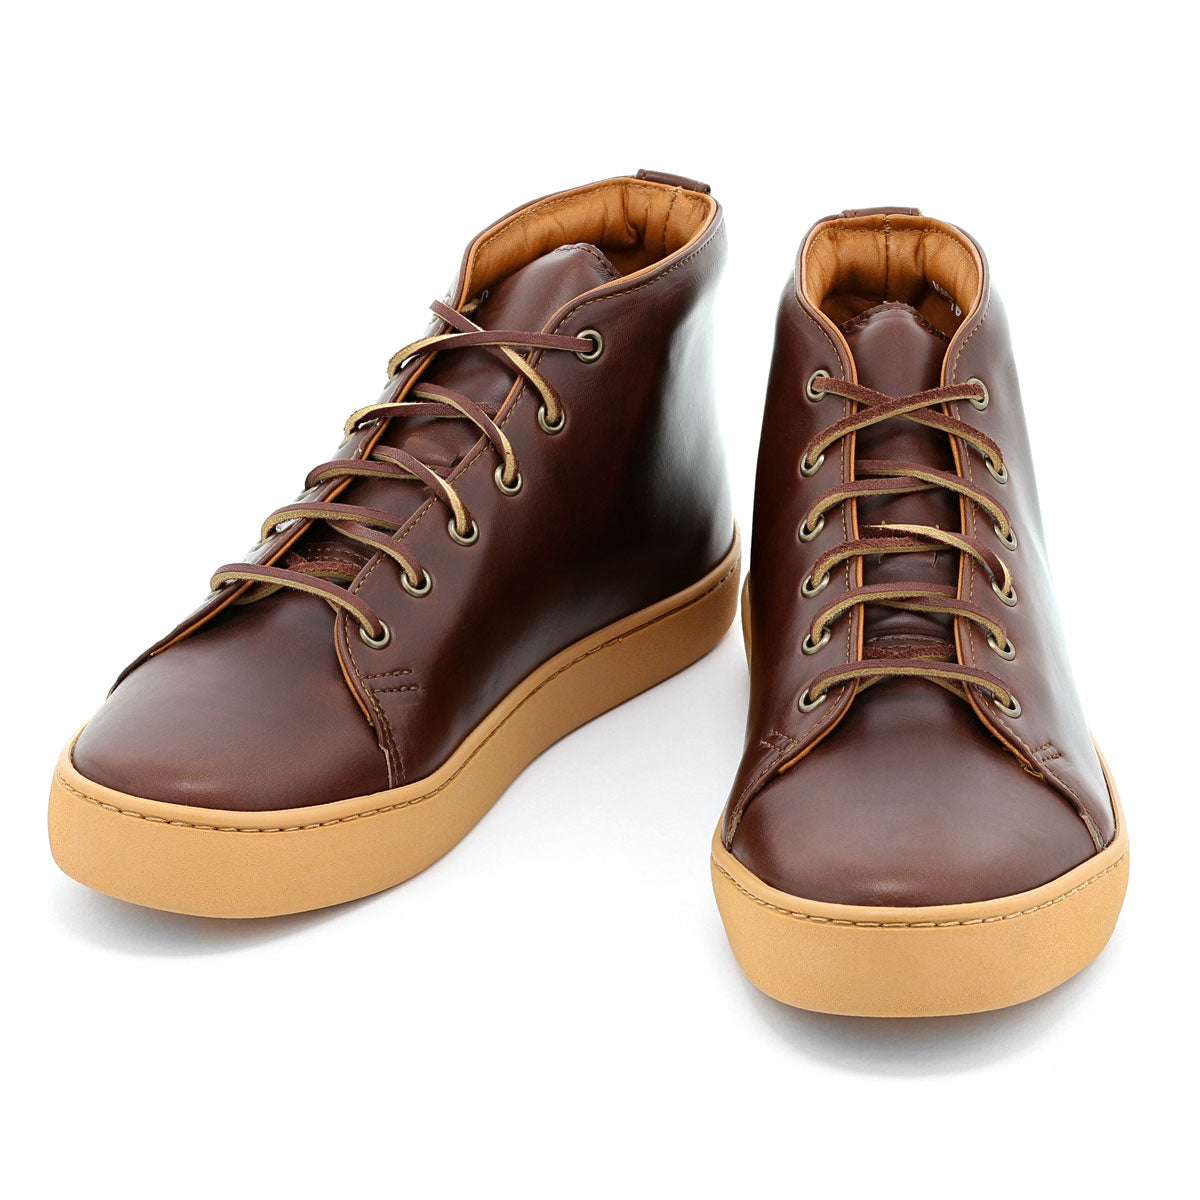 Heritage Court Classic 2.0 Mid - Carolina Brown Chromexcel